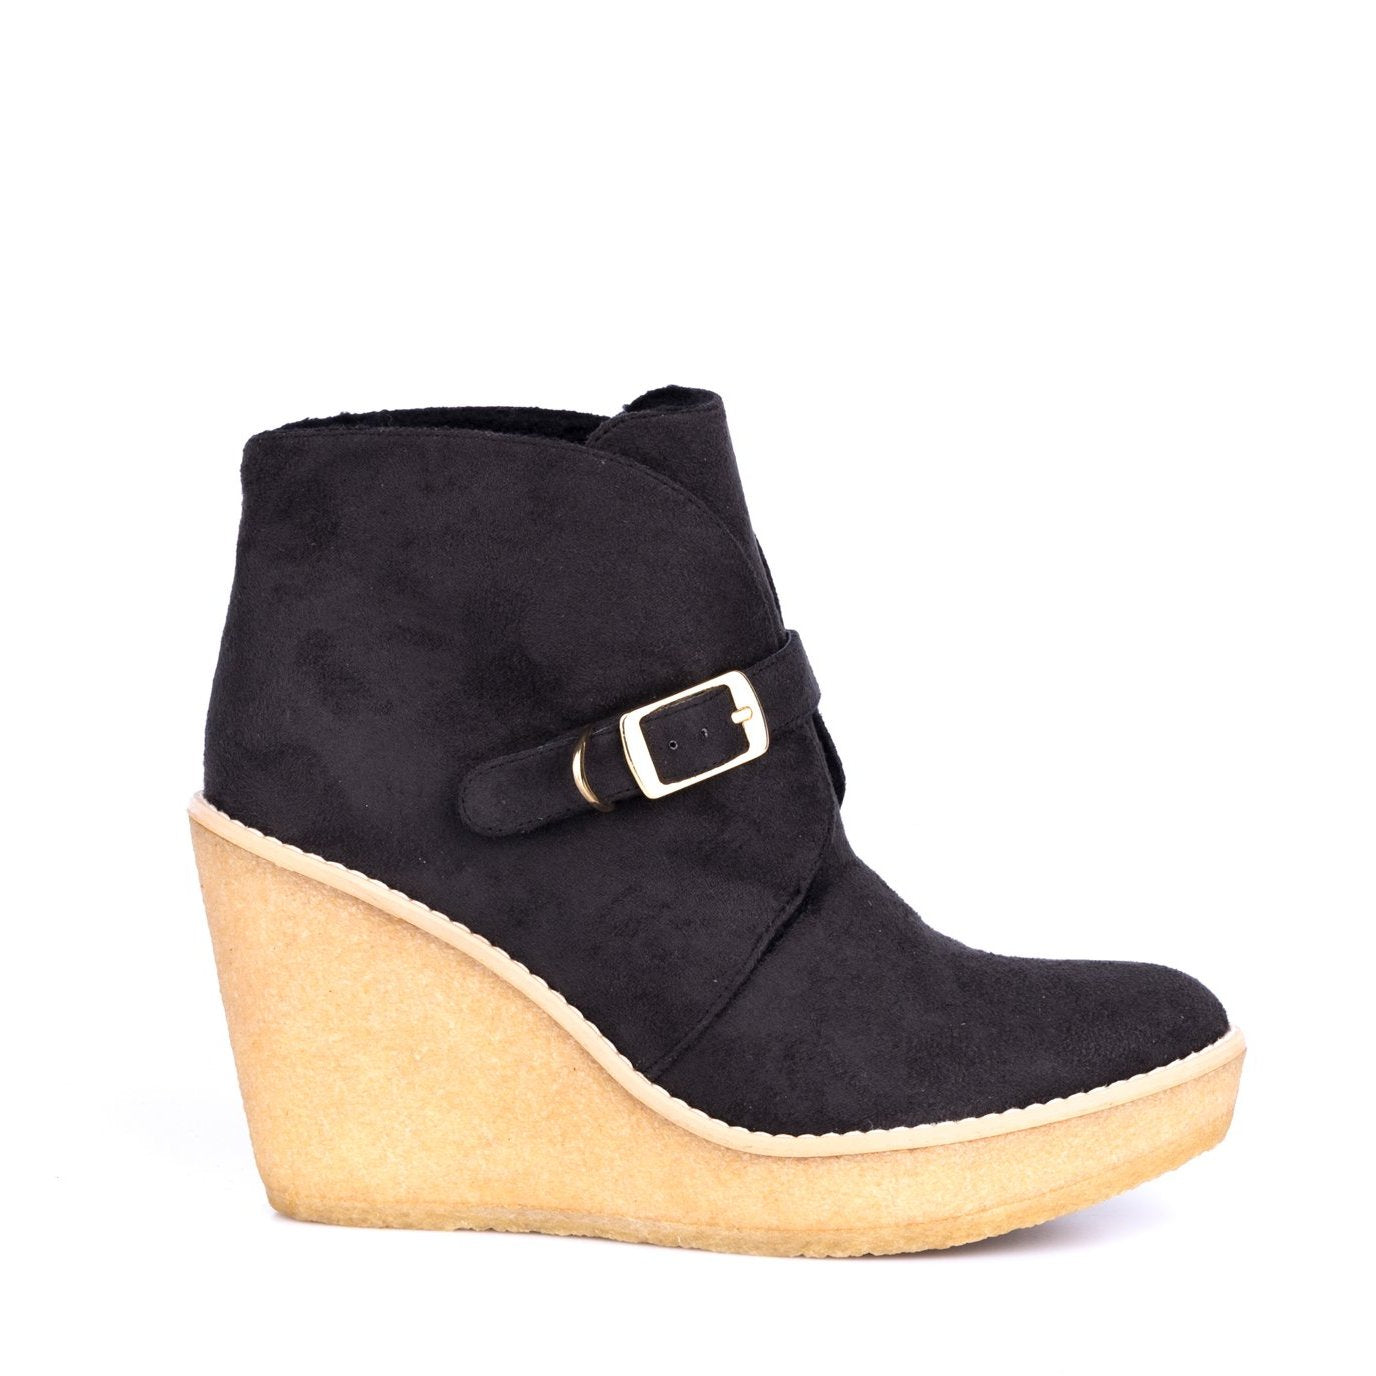 Faux Suede Ankle Boots-Stella McCartney-SHOPATVOI.COM - Luxury Fashion Designer